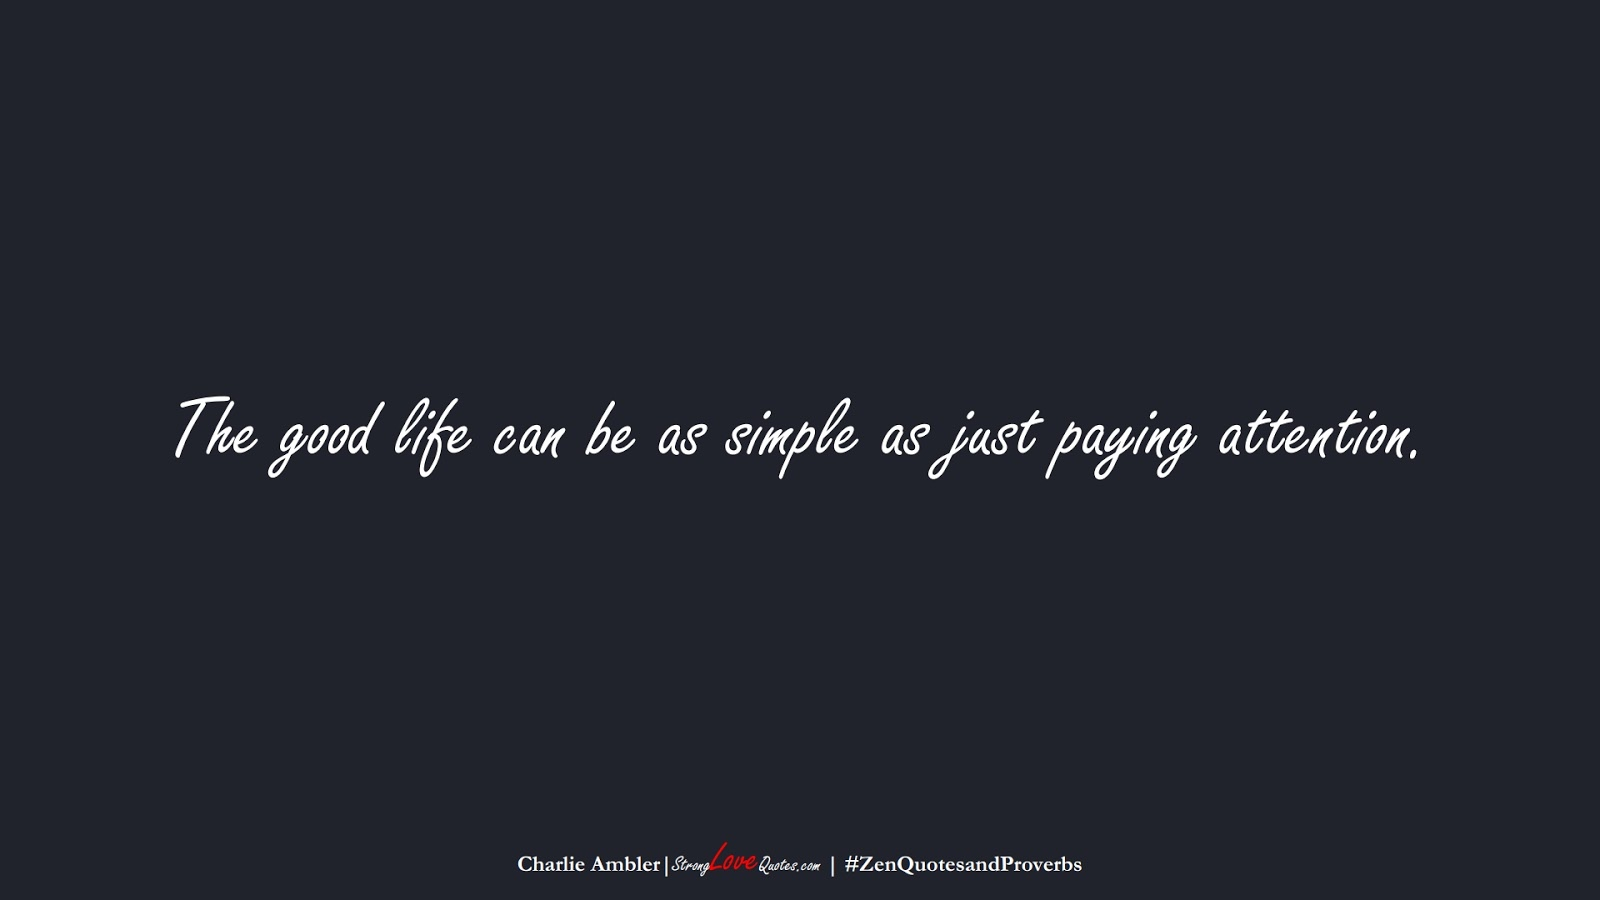 The good life can be as simple as just paying attention. (Charlie Ambler);  #ZenQuotesandProverbs